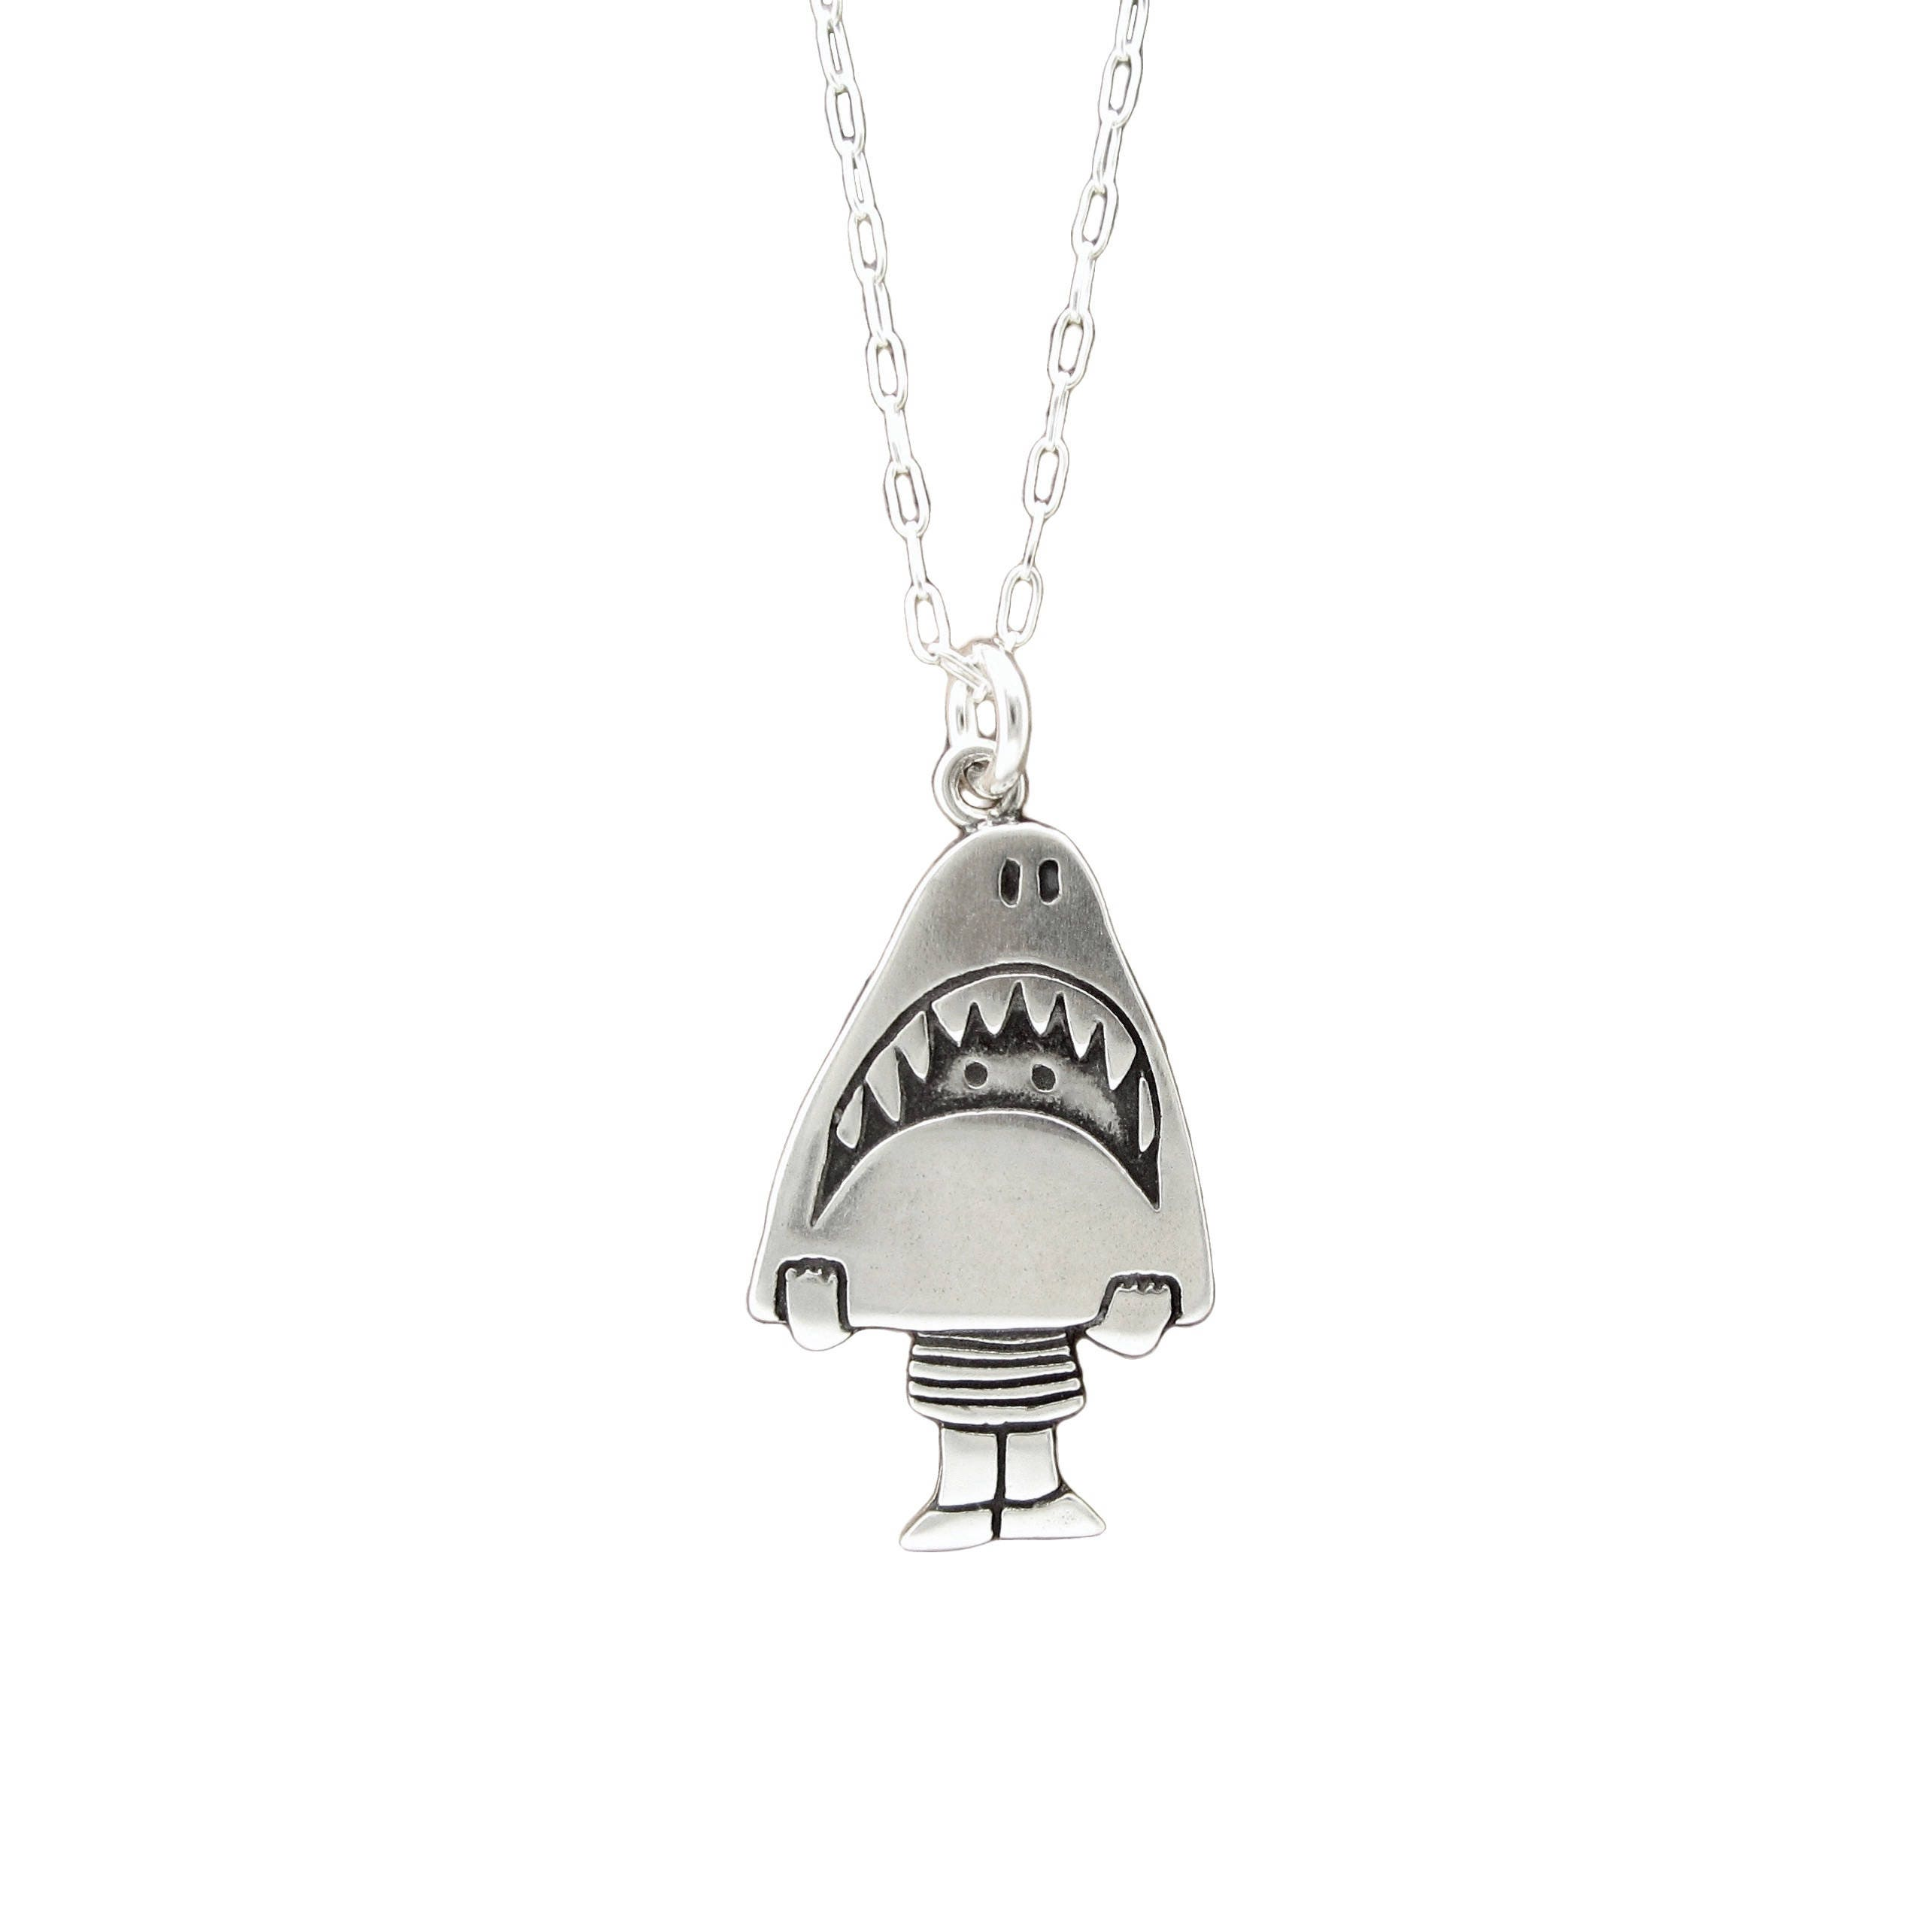 pin hammerhead gold necklace bling tooth shark pinterest diamond